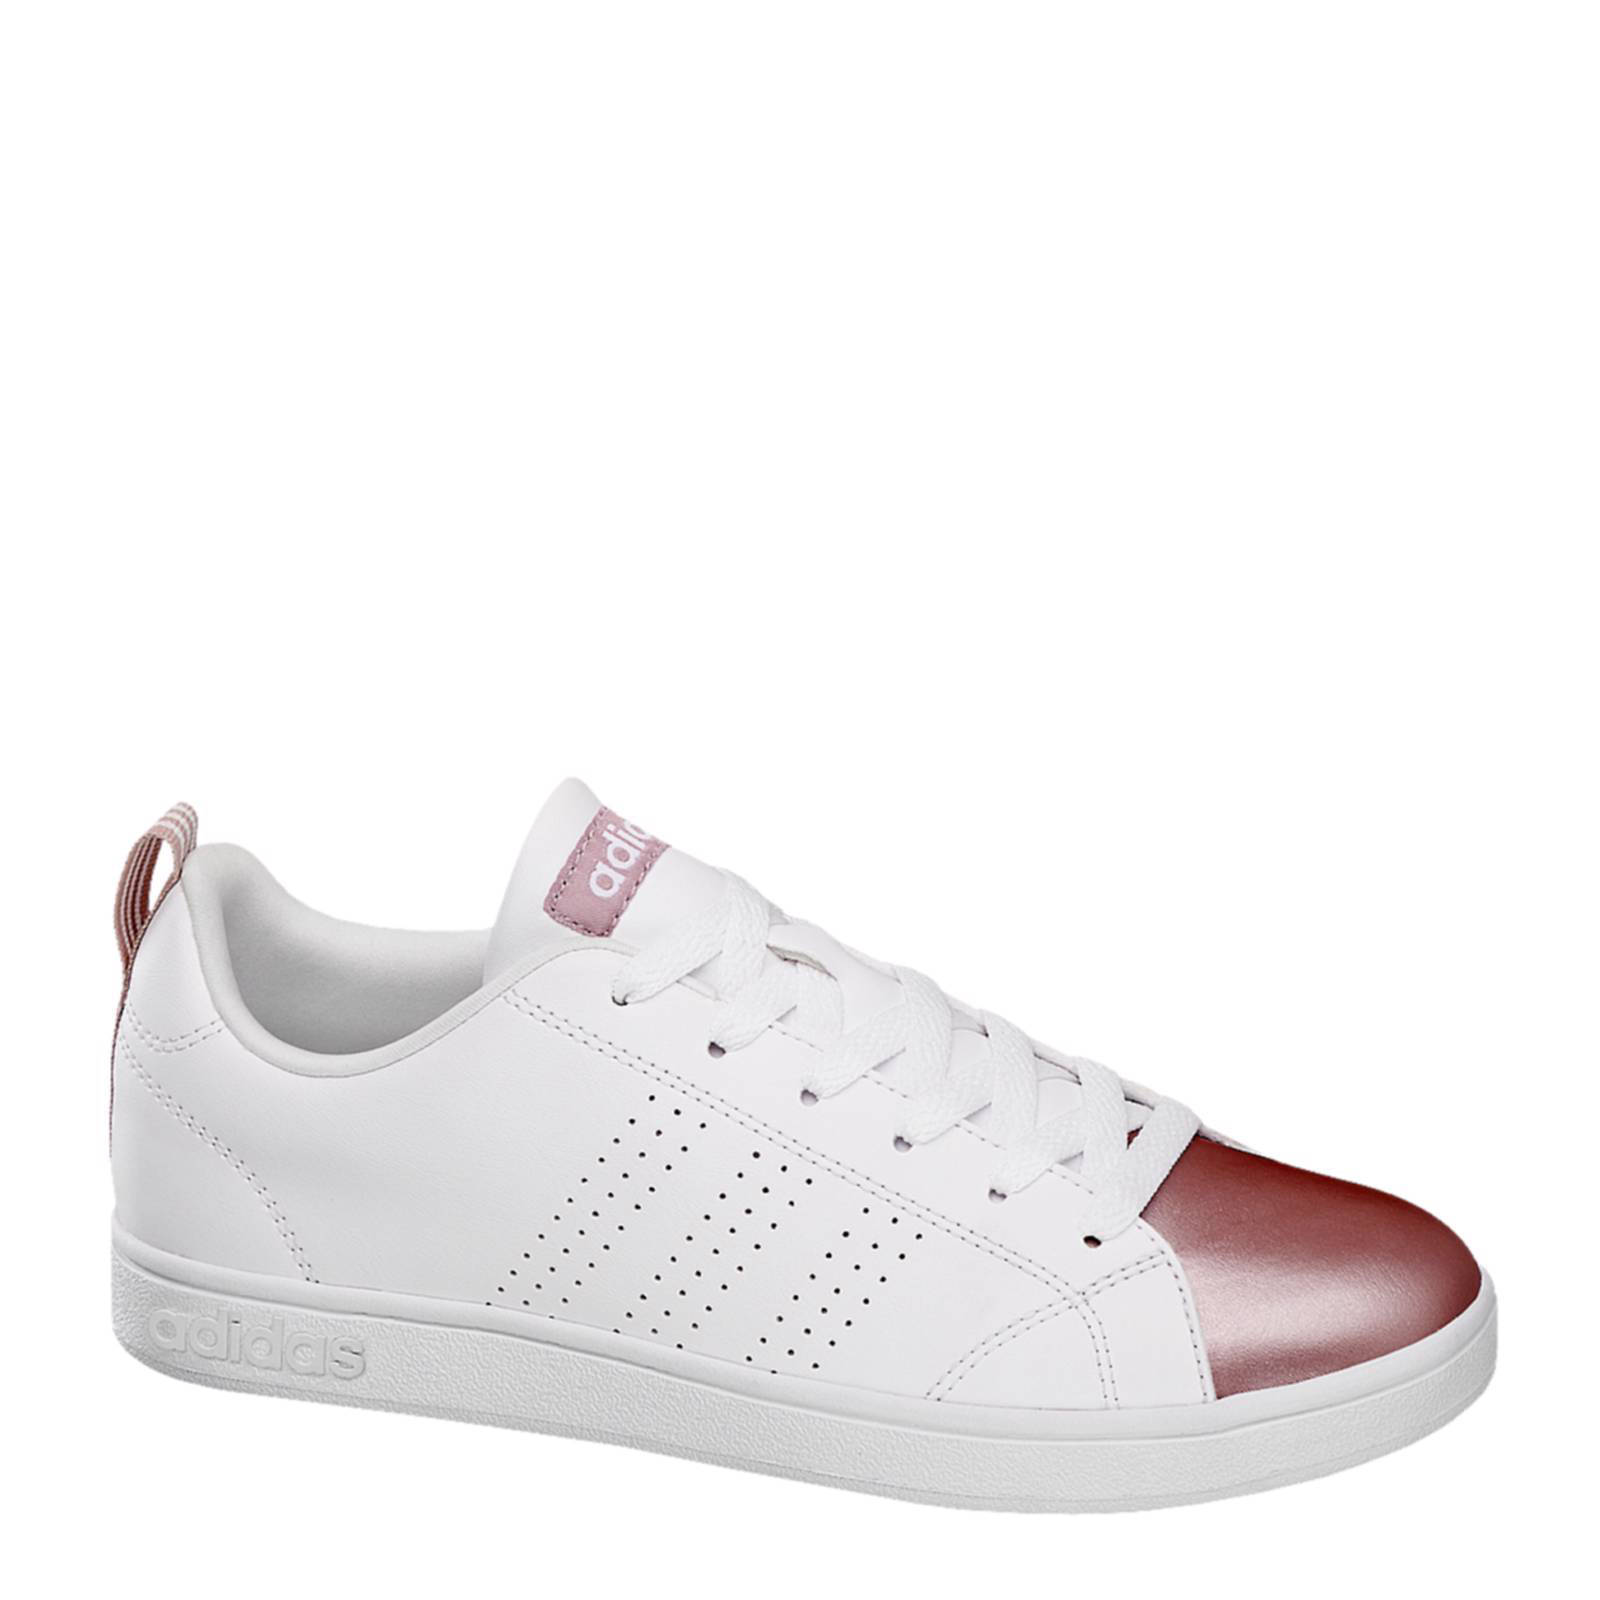 adidas neo dames sneakers wit